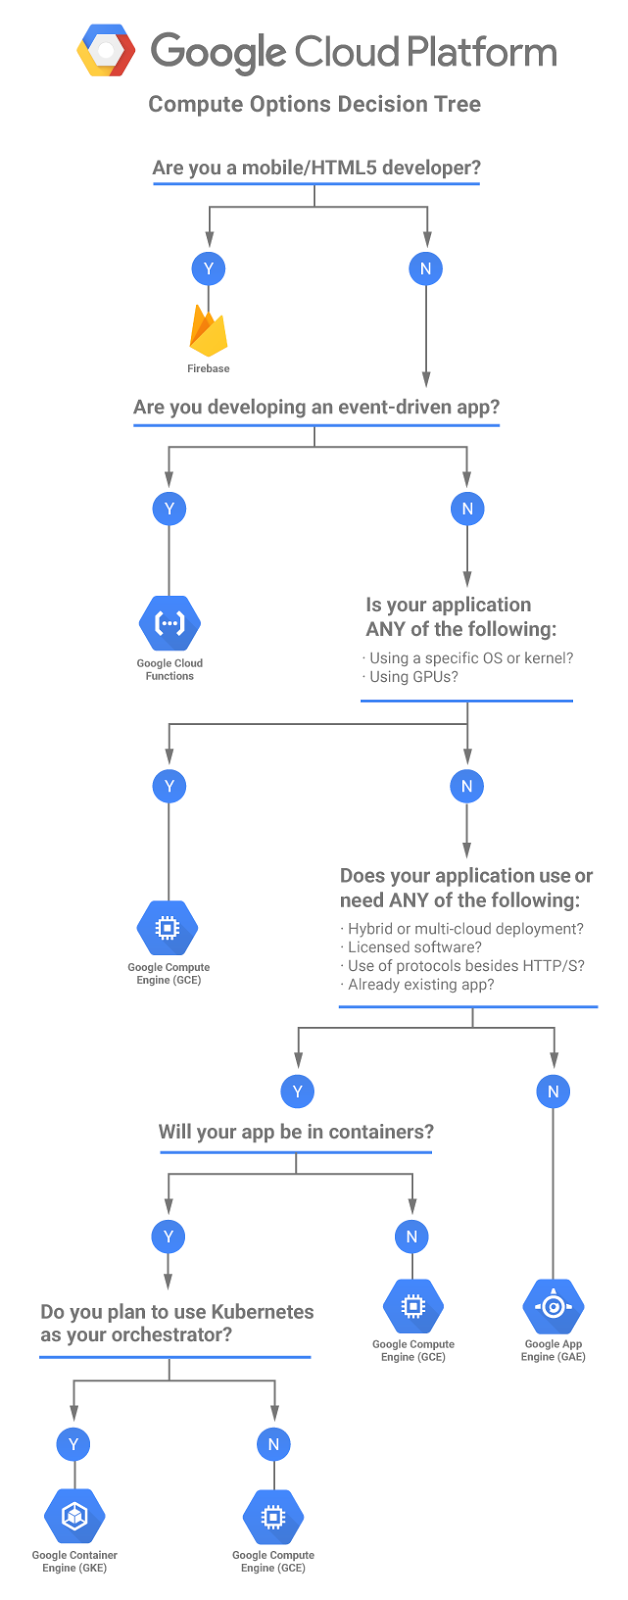 Google cloud platform blog choosing the right compute option in gcp this is by no means a comprehensive decision tree and each one of our products supports a wider range of use cases than is presented here ccuart Images